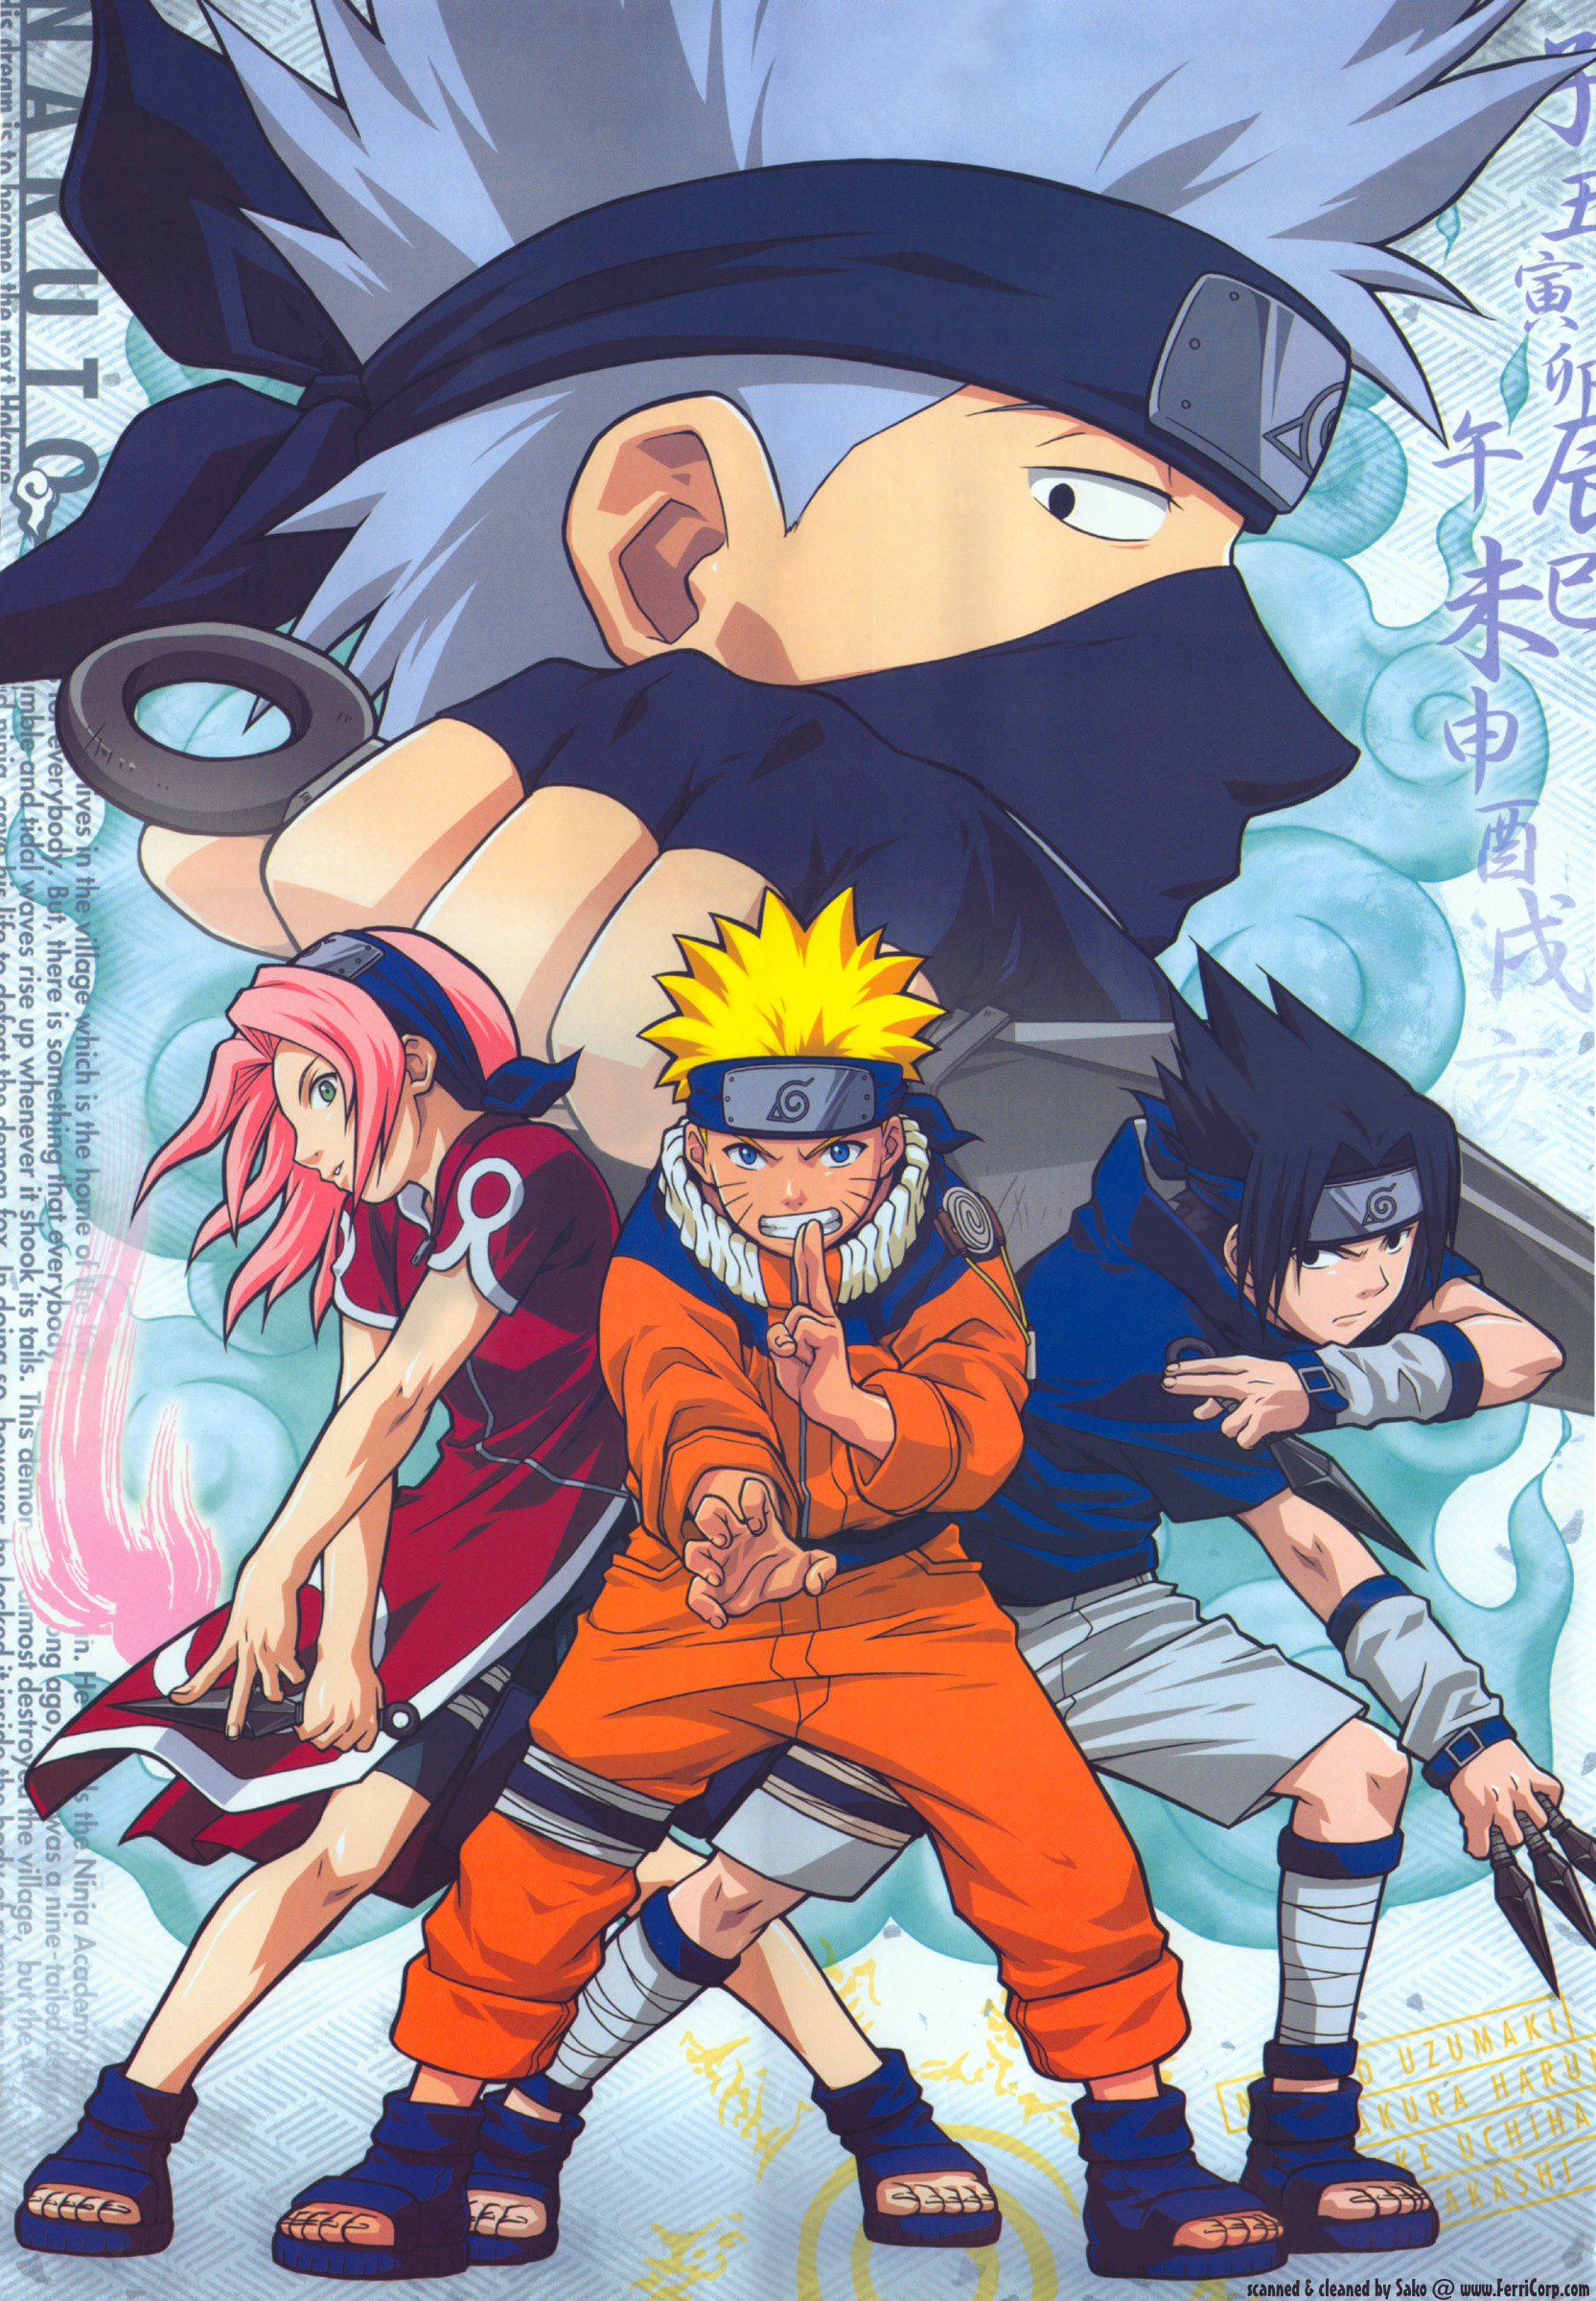 Sakura, Naruto, Sasuke Pose with Kakashi in Background.jpg